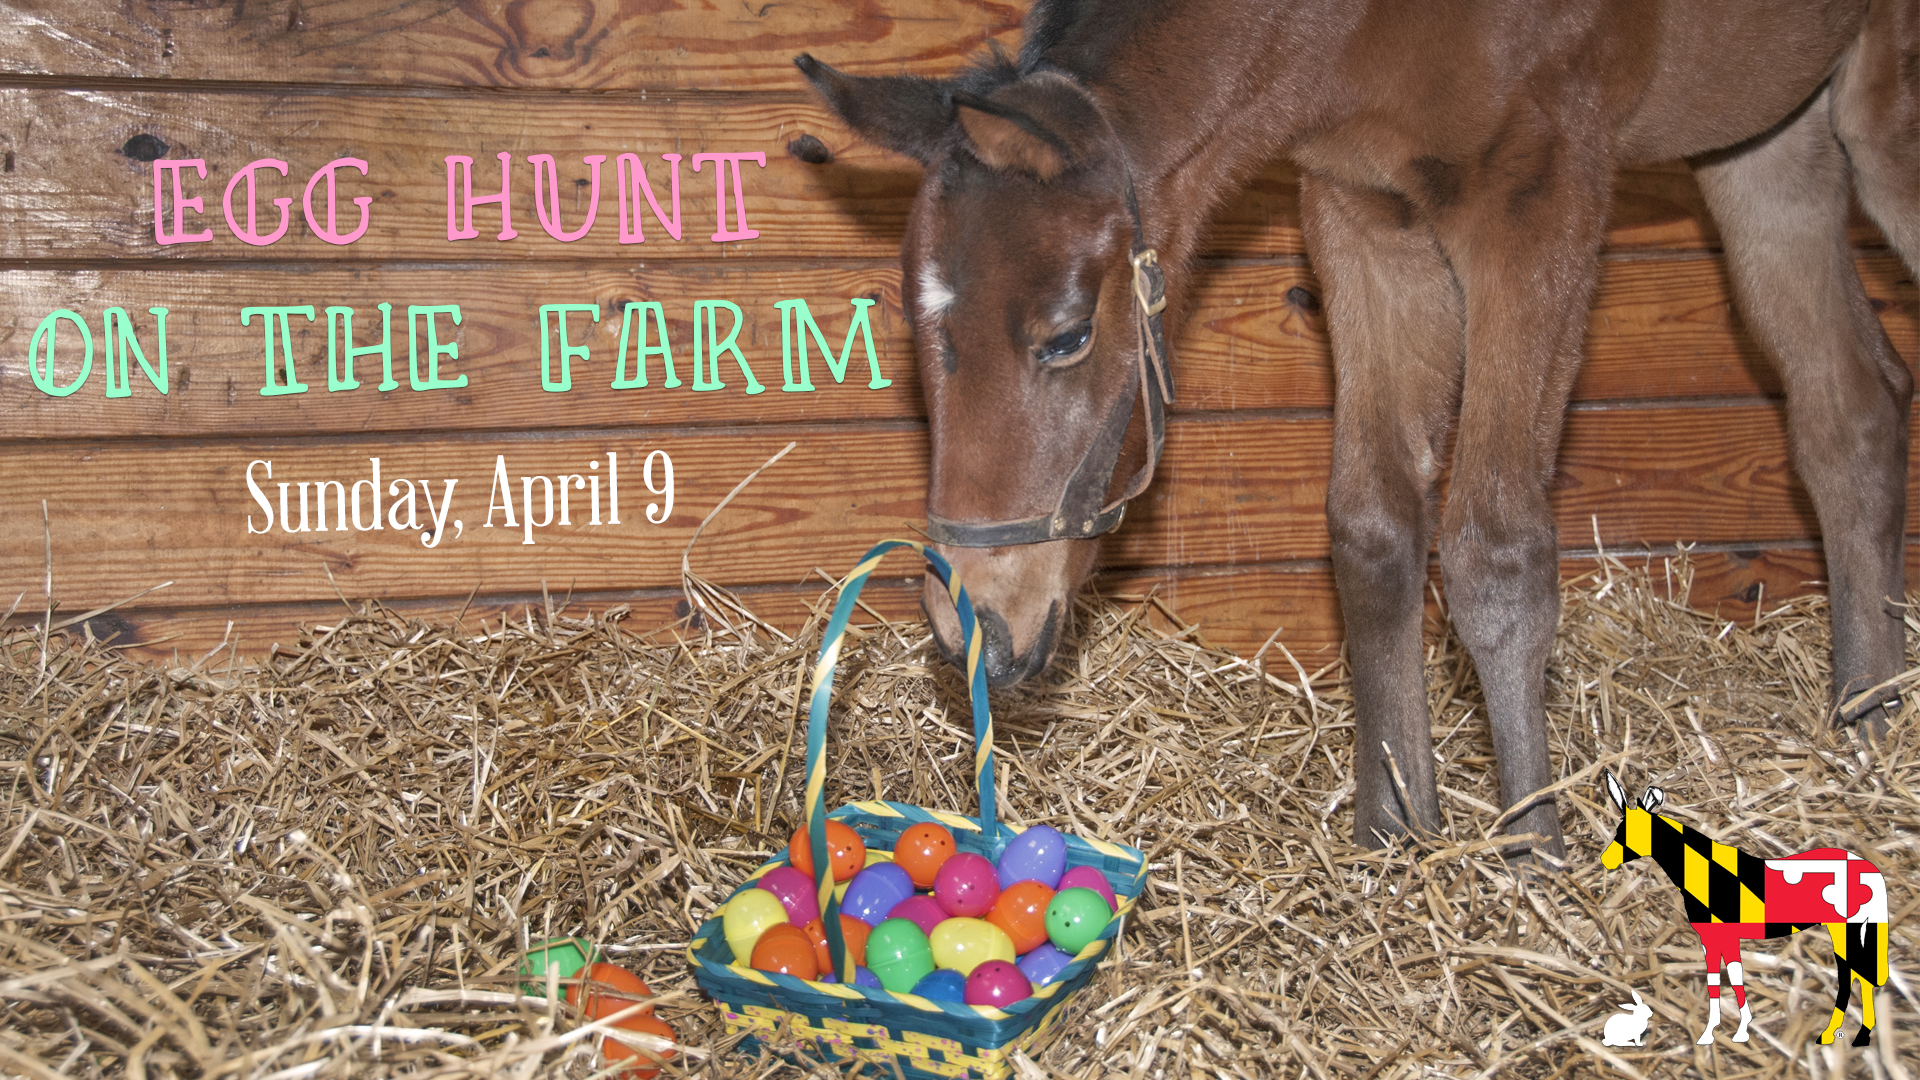 Egg Hunt on the Farm